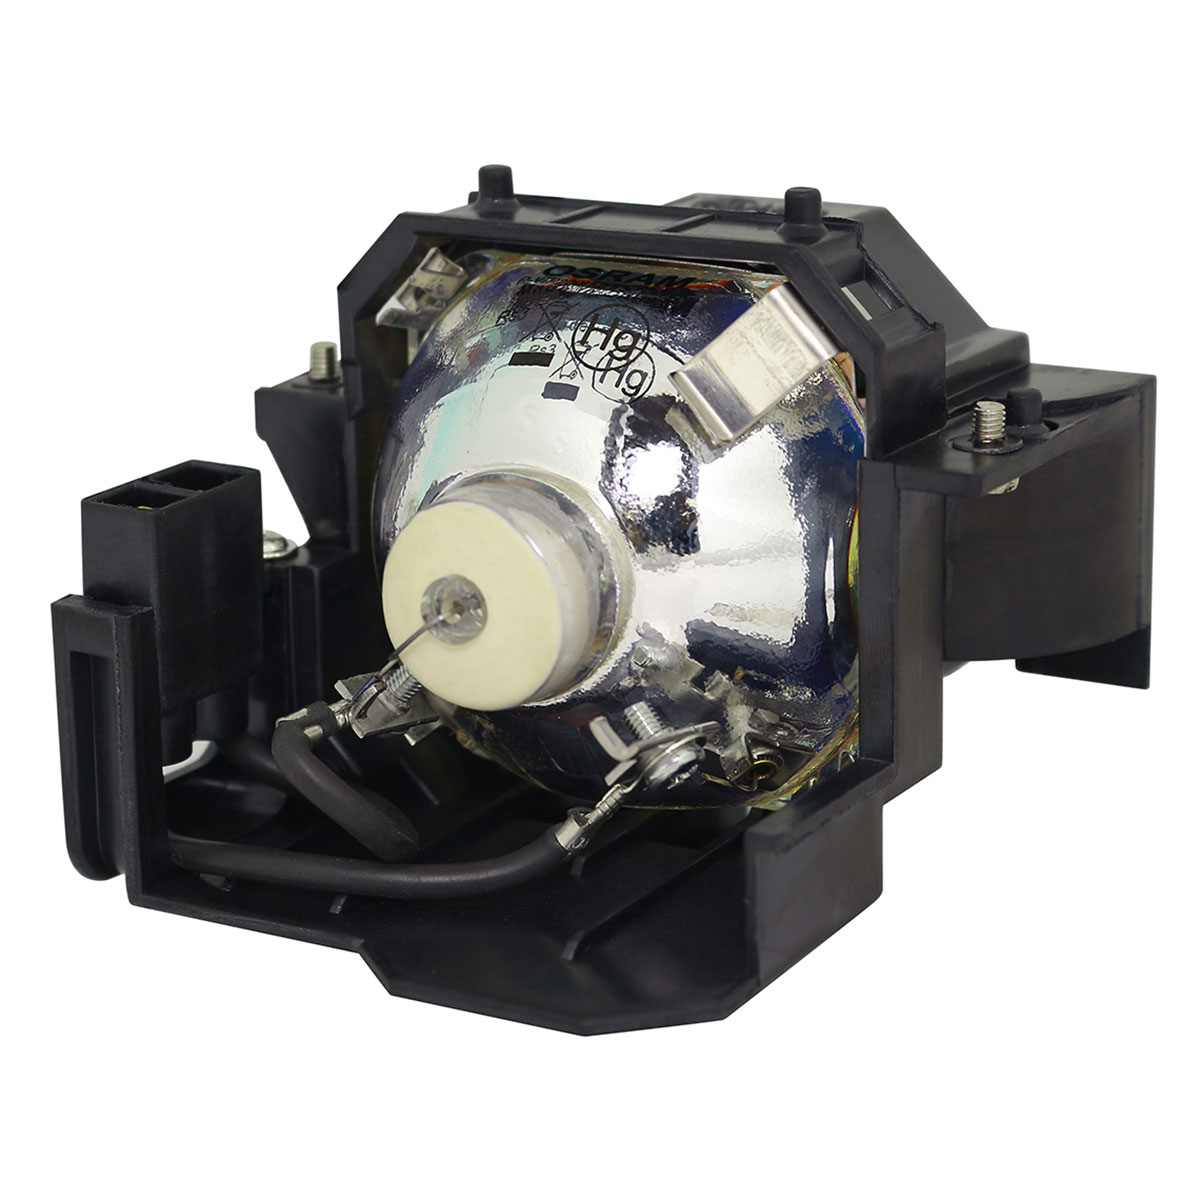 Lutema Platinum Bulb for Epson H330C Projector (Lamp Only) - image 1 of 5